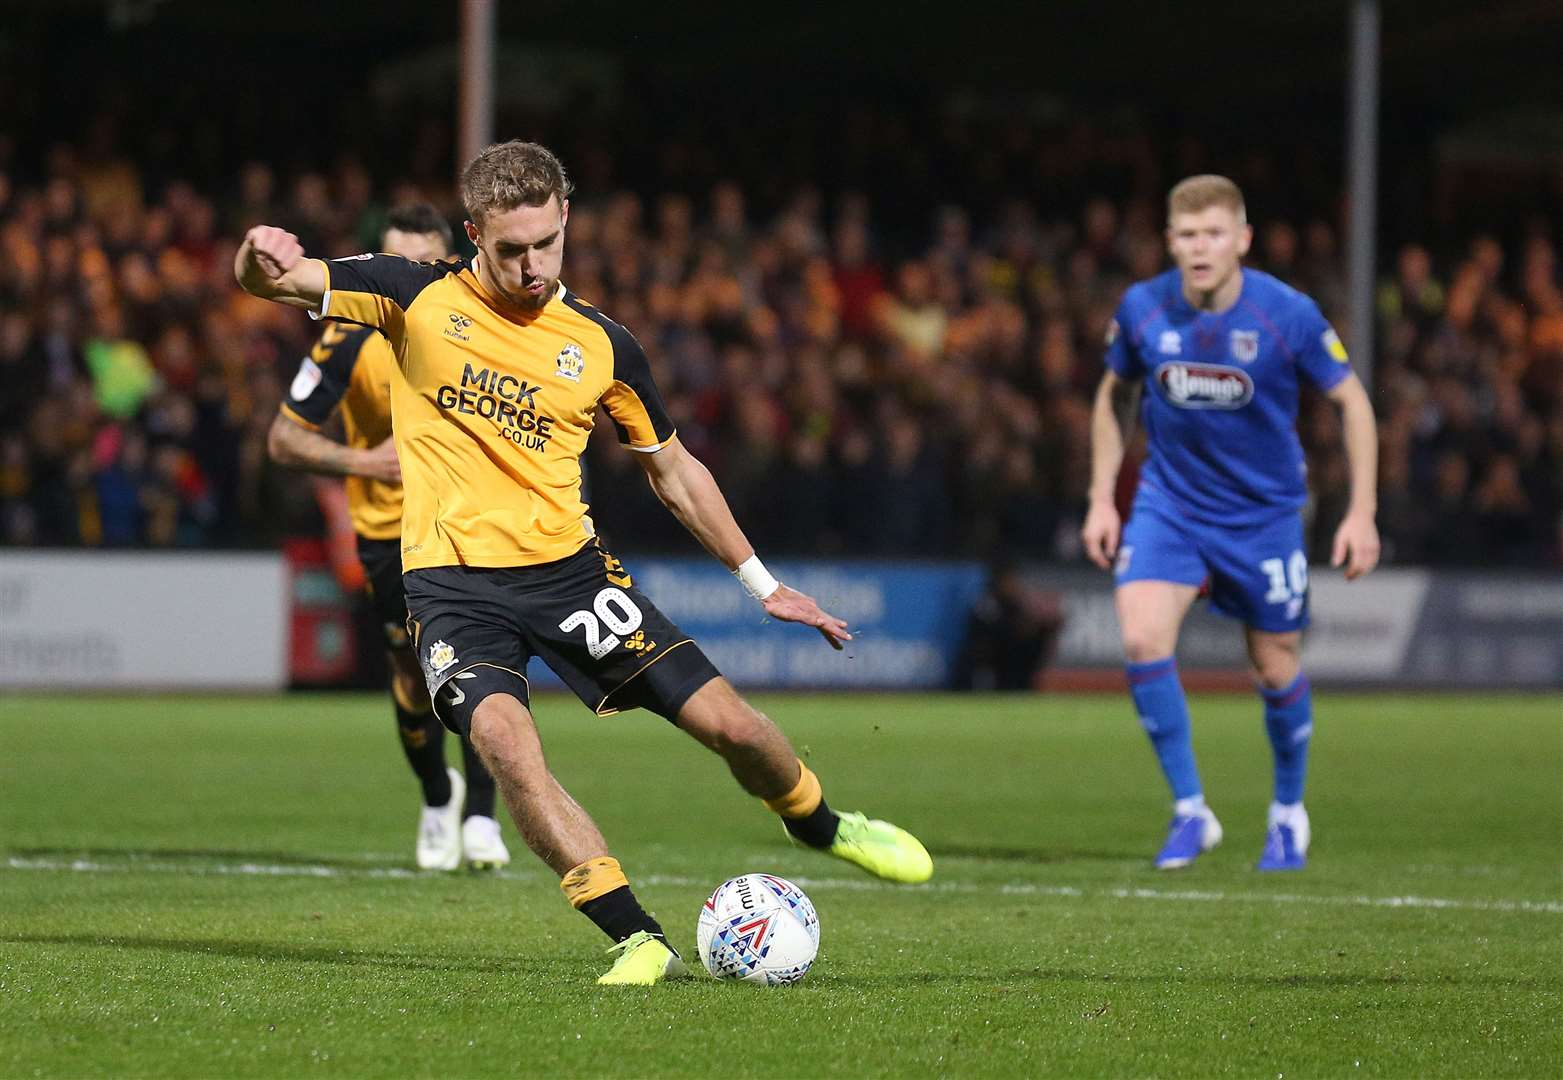 Colin Calderwood hopes Sam Smith can continue rich vein of form for Cambridge United